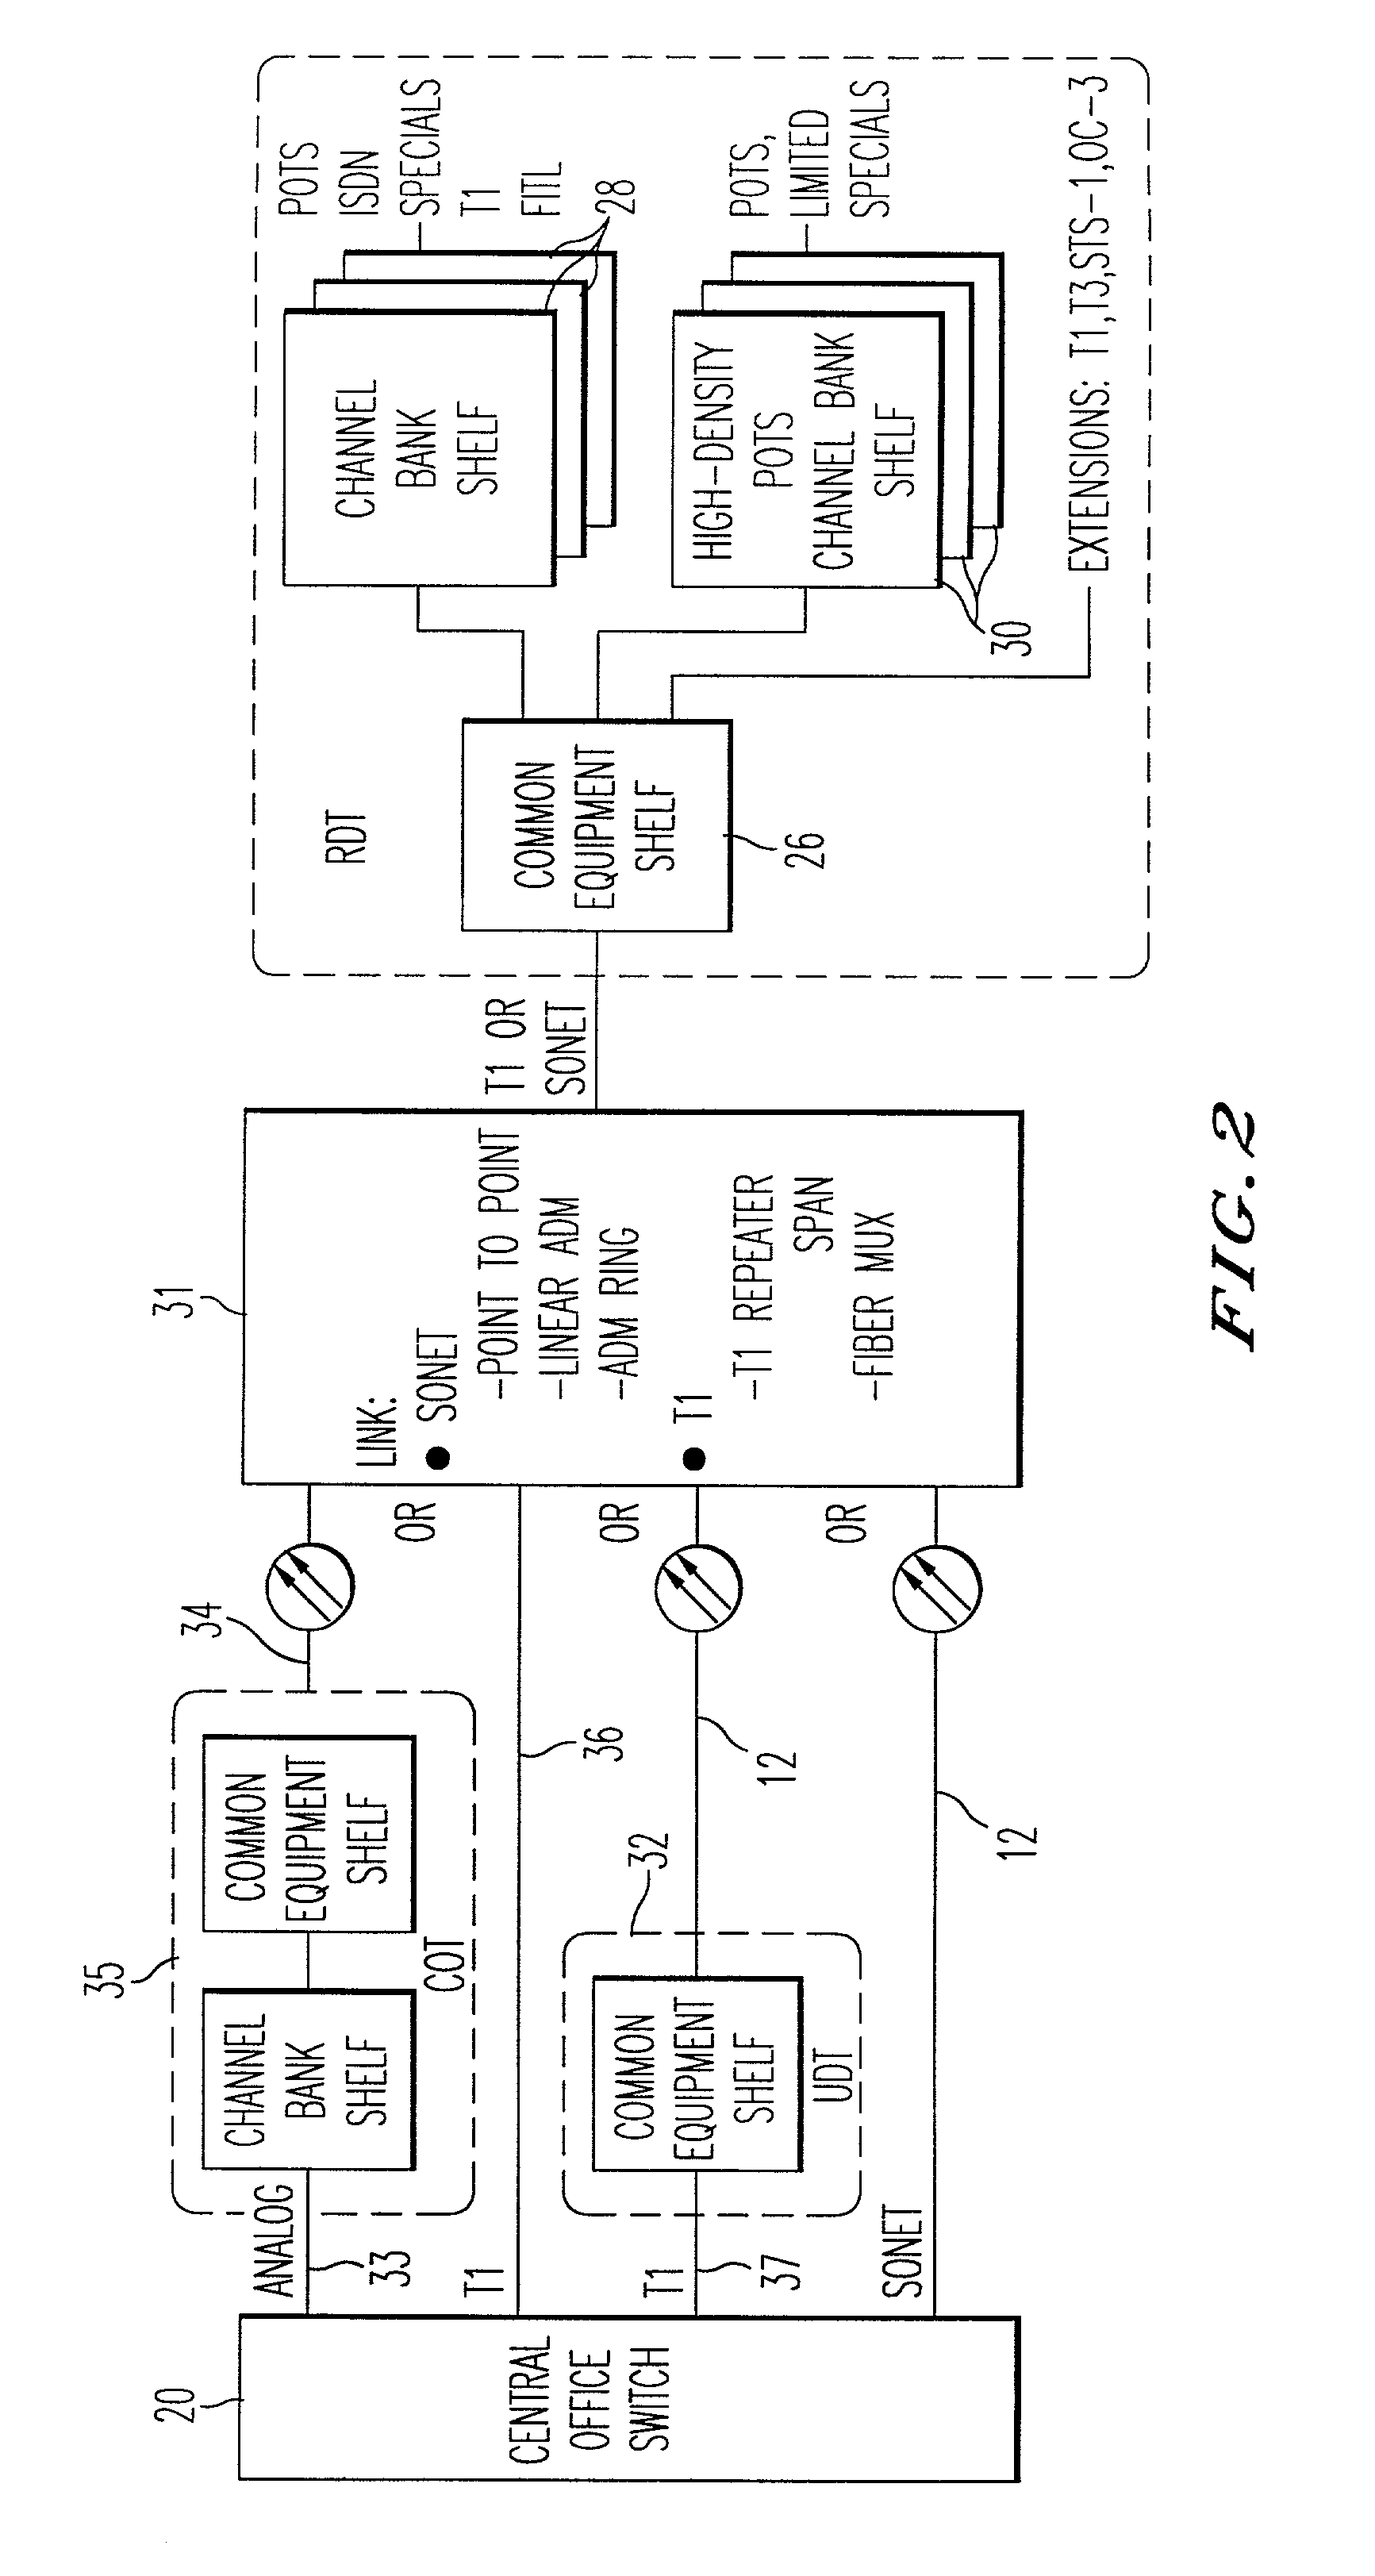 Patent Us7079555 Integrated Digital Loop Carrier System With General Block Diagram Of Multiplexer Drawing